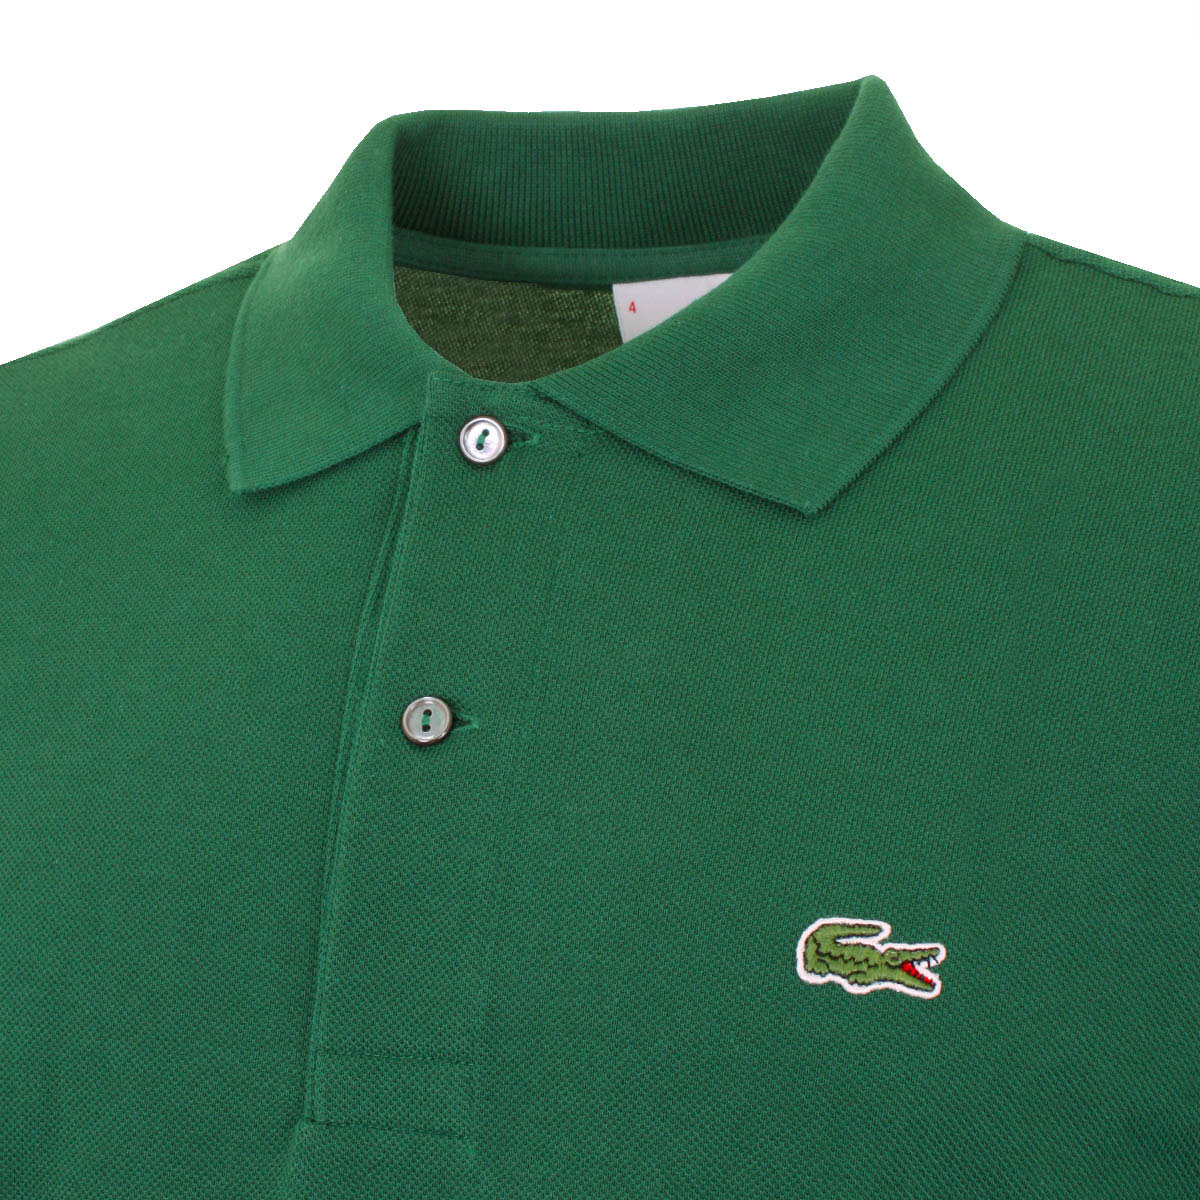 2146bfa7a9 Lacoste Mens 2018 Classic Cotton L1212 Short Sleeve Polo Shirt